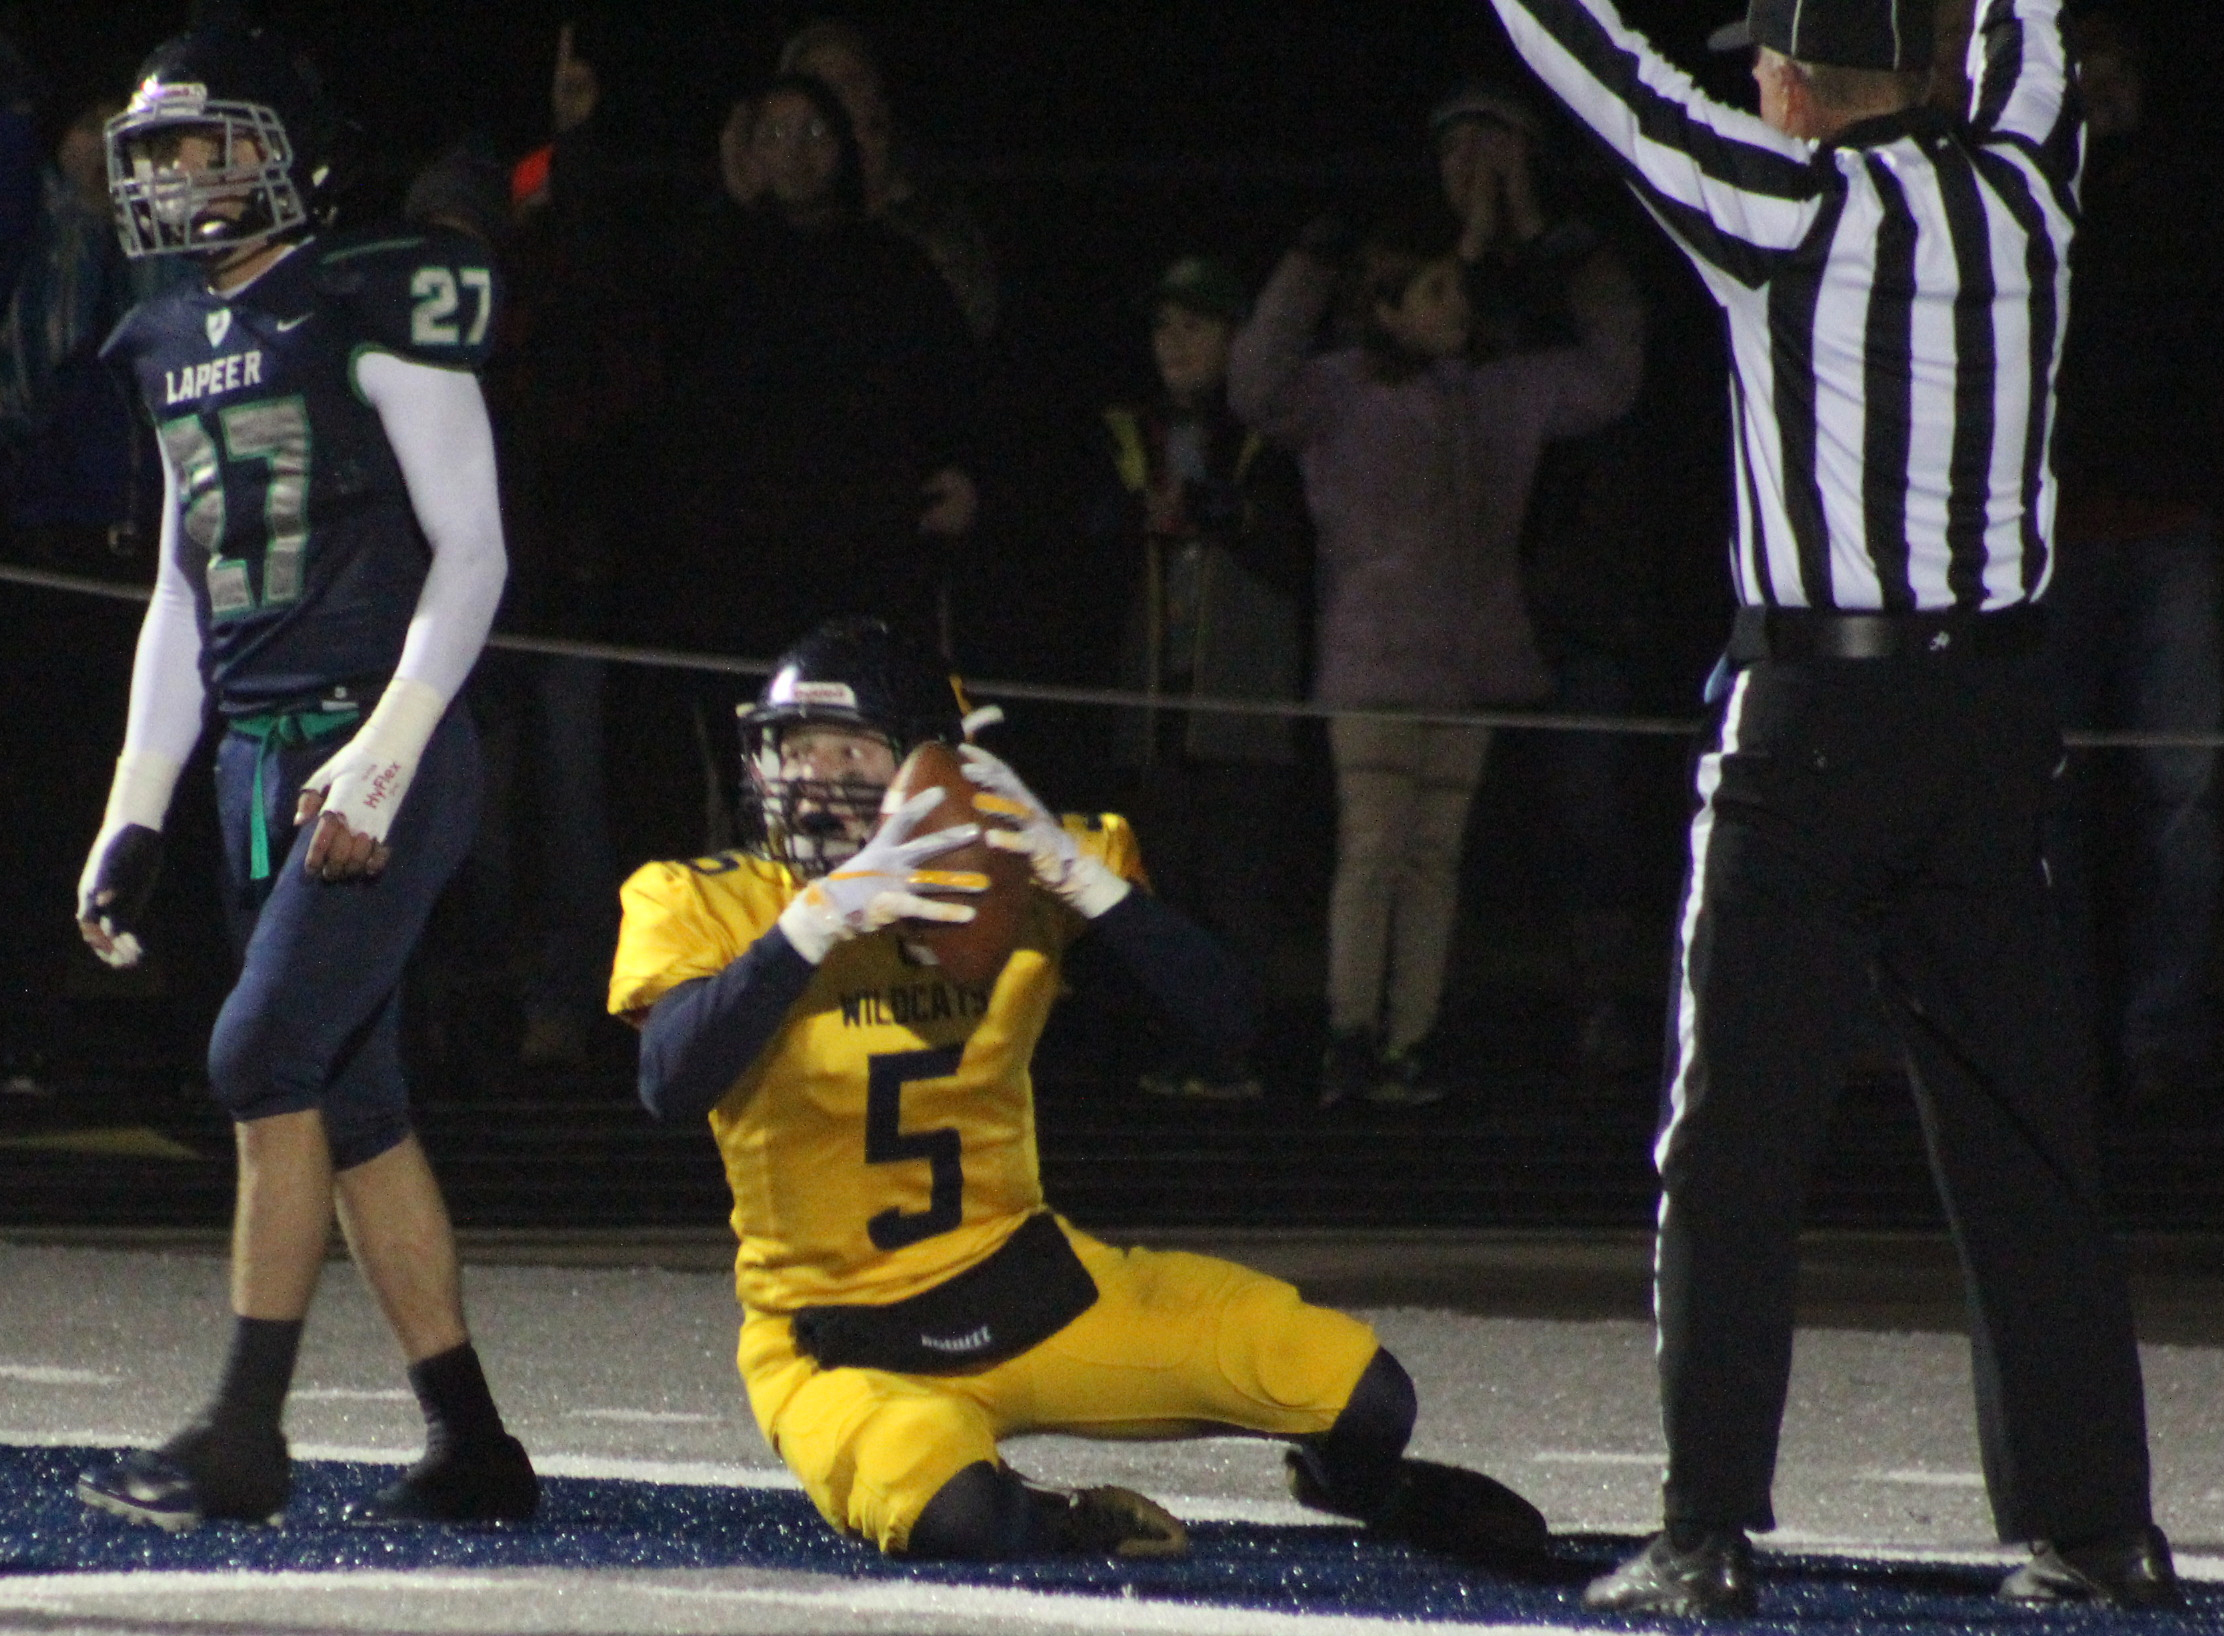 Joseph Miller scored Oxford's only touchdown of the game. Photos by Joe Oster.